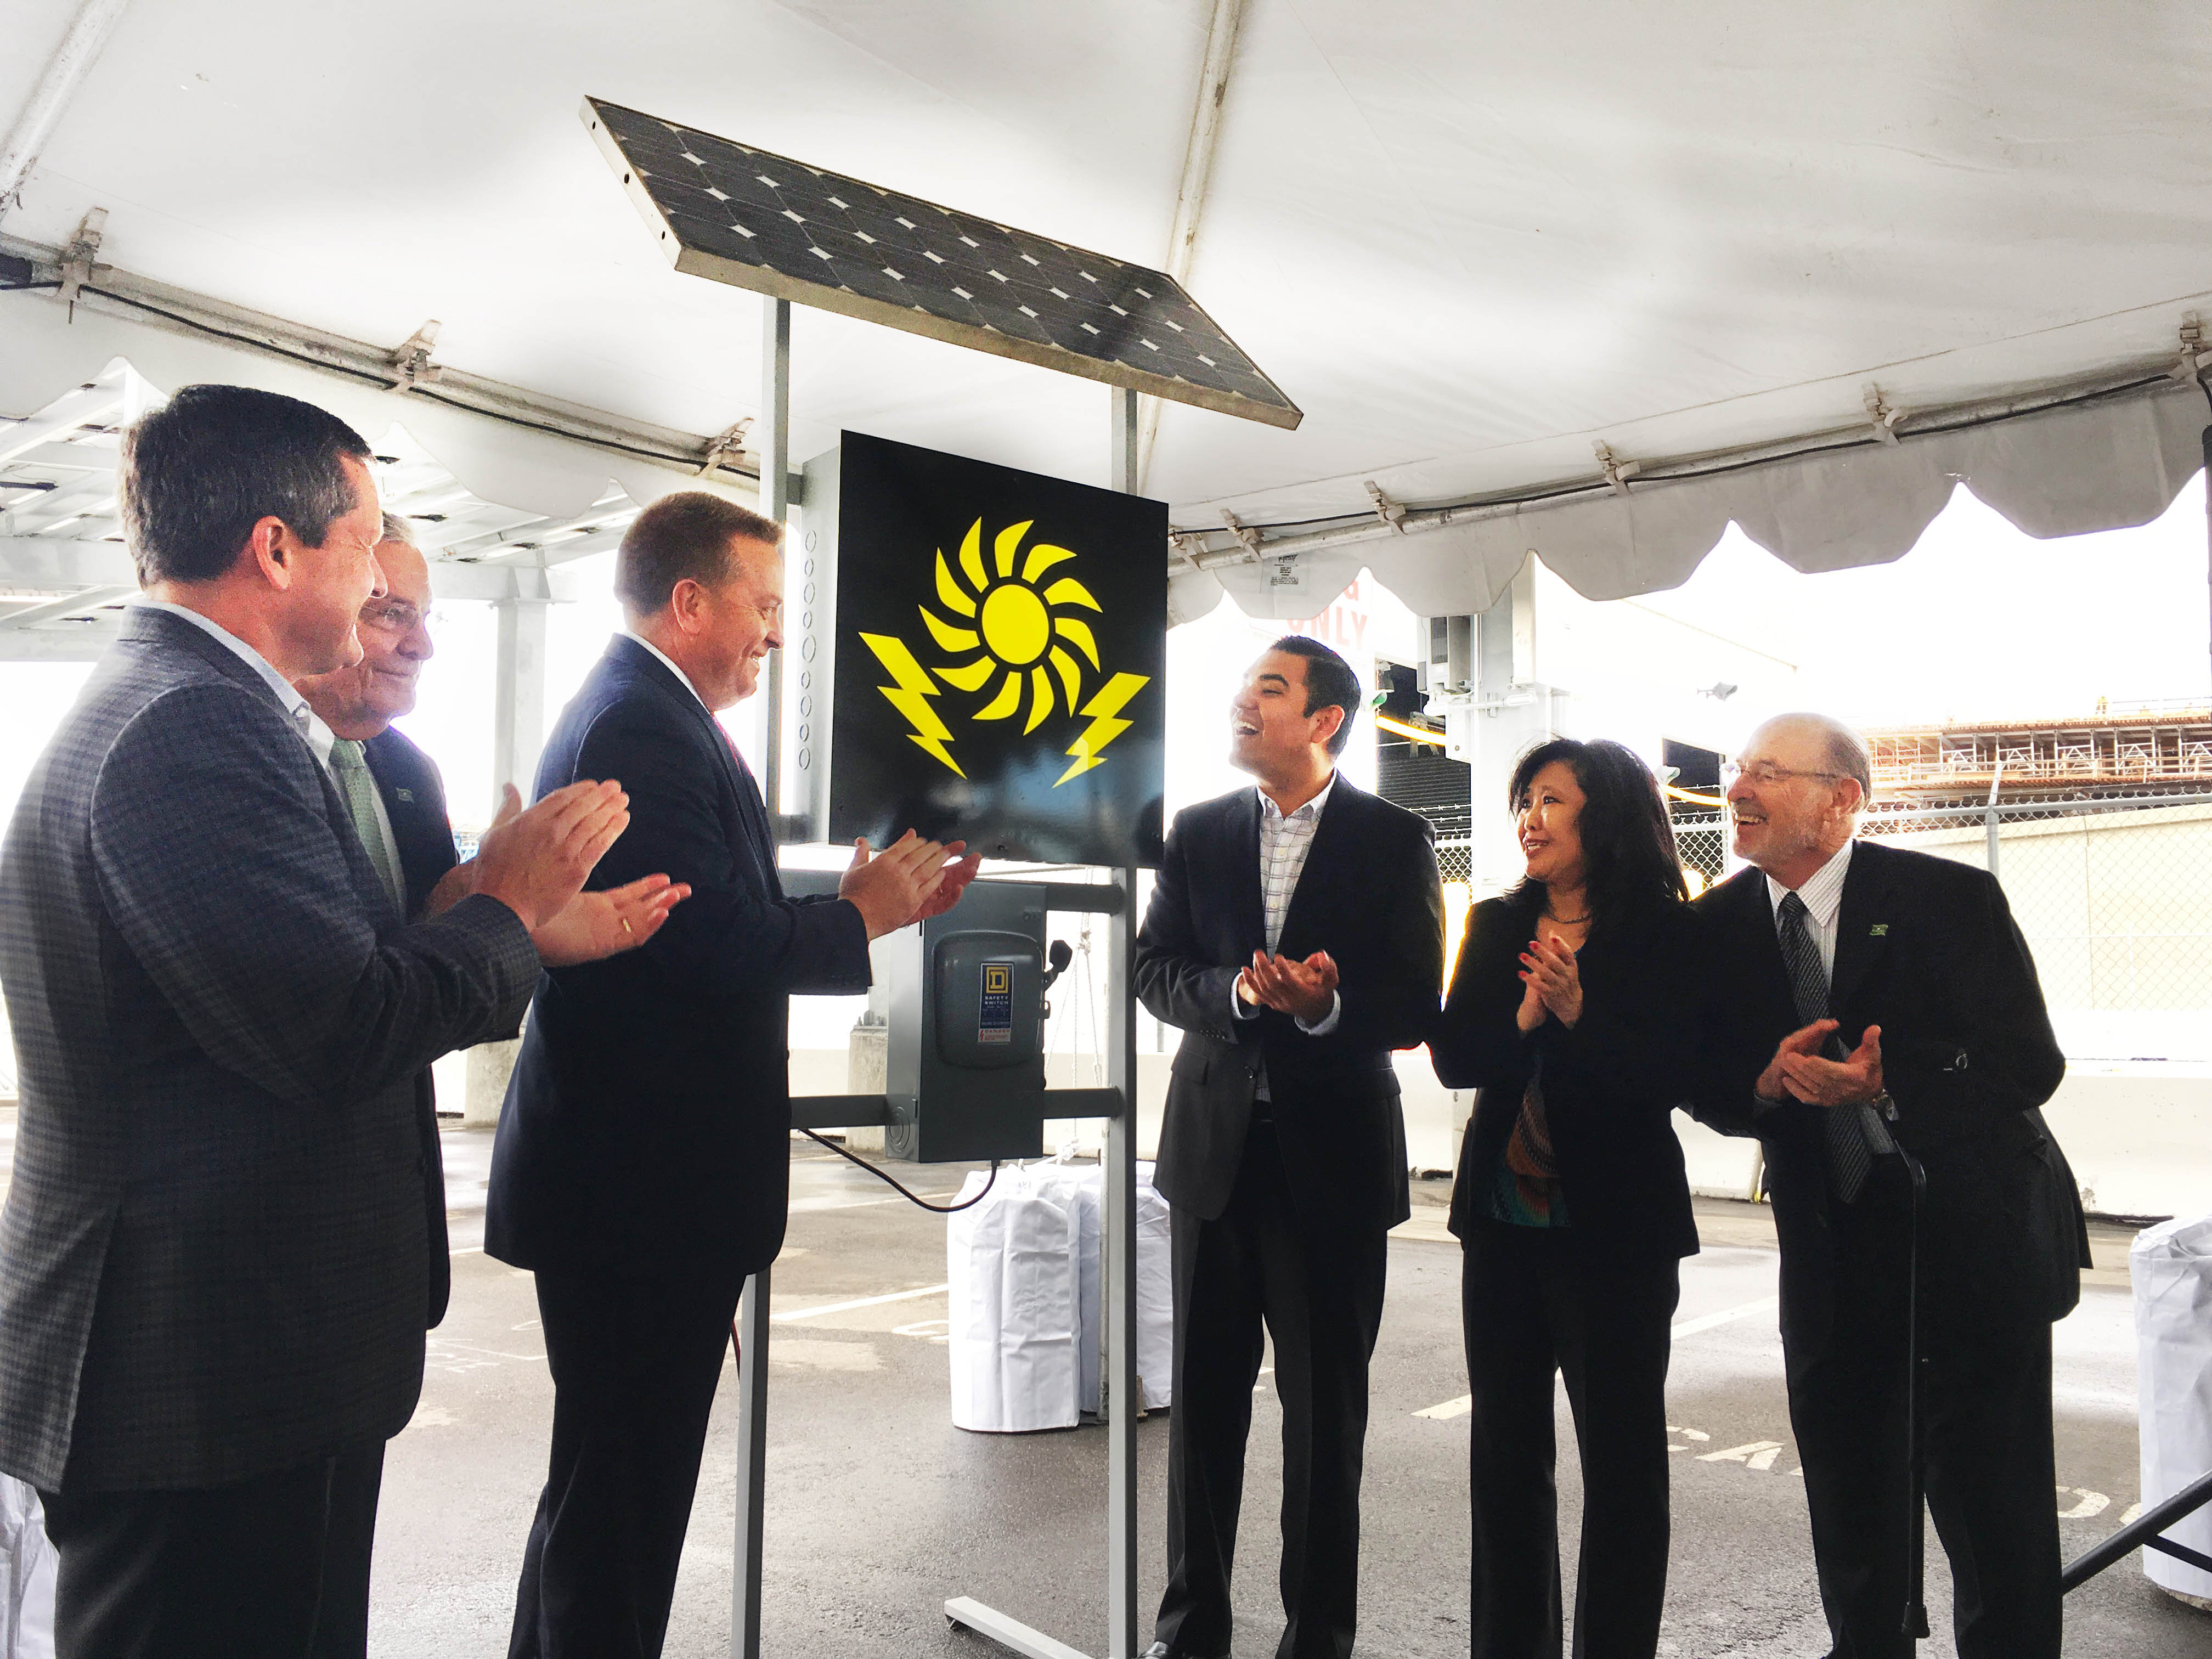 L to R: Allan Schurr, president of Edison Energy; Doug Drummond, commissioner of the Port of Long Beach; Anthony Otto, president of Long Beach Container Terminal; Long Beach Mayor Robert Garcia; Gina Heng, vice president and general manager of Mitsubishi Electric Photovoltaic Division; and James Hankla, senior vice president of governmental relations at PFMG Solar, watch the ceremonial flip of the switch to power on the new 904.75kW solar array at Long Beach Container Terminal.